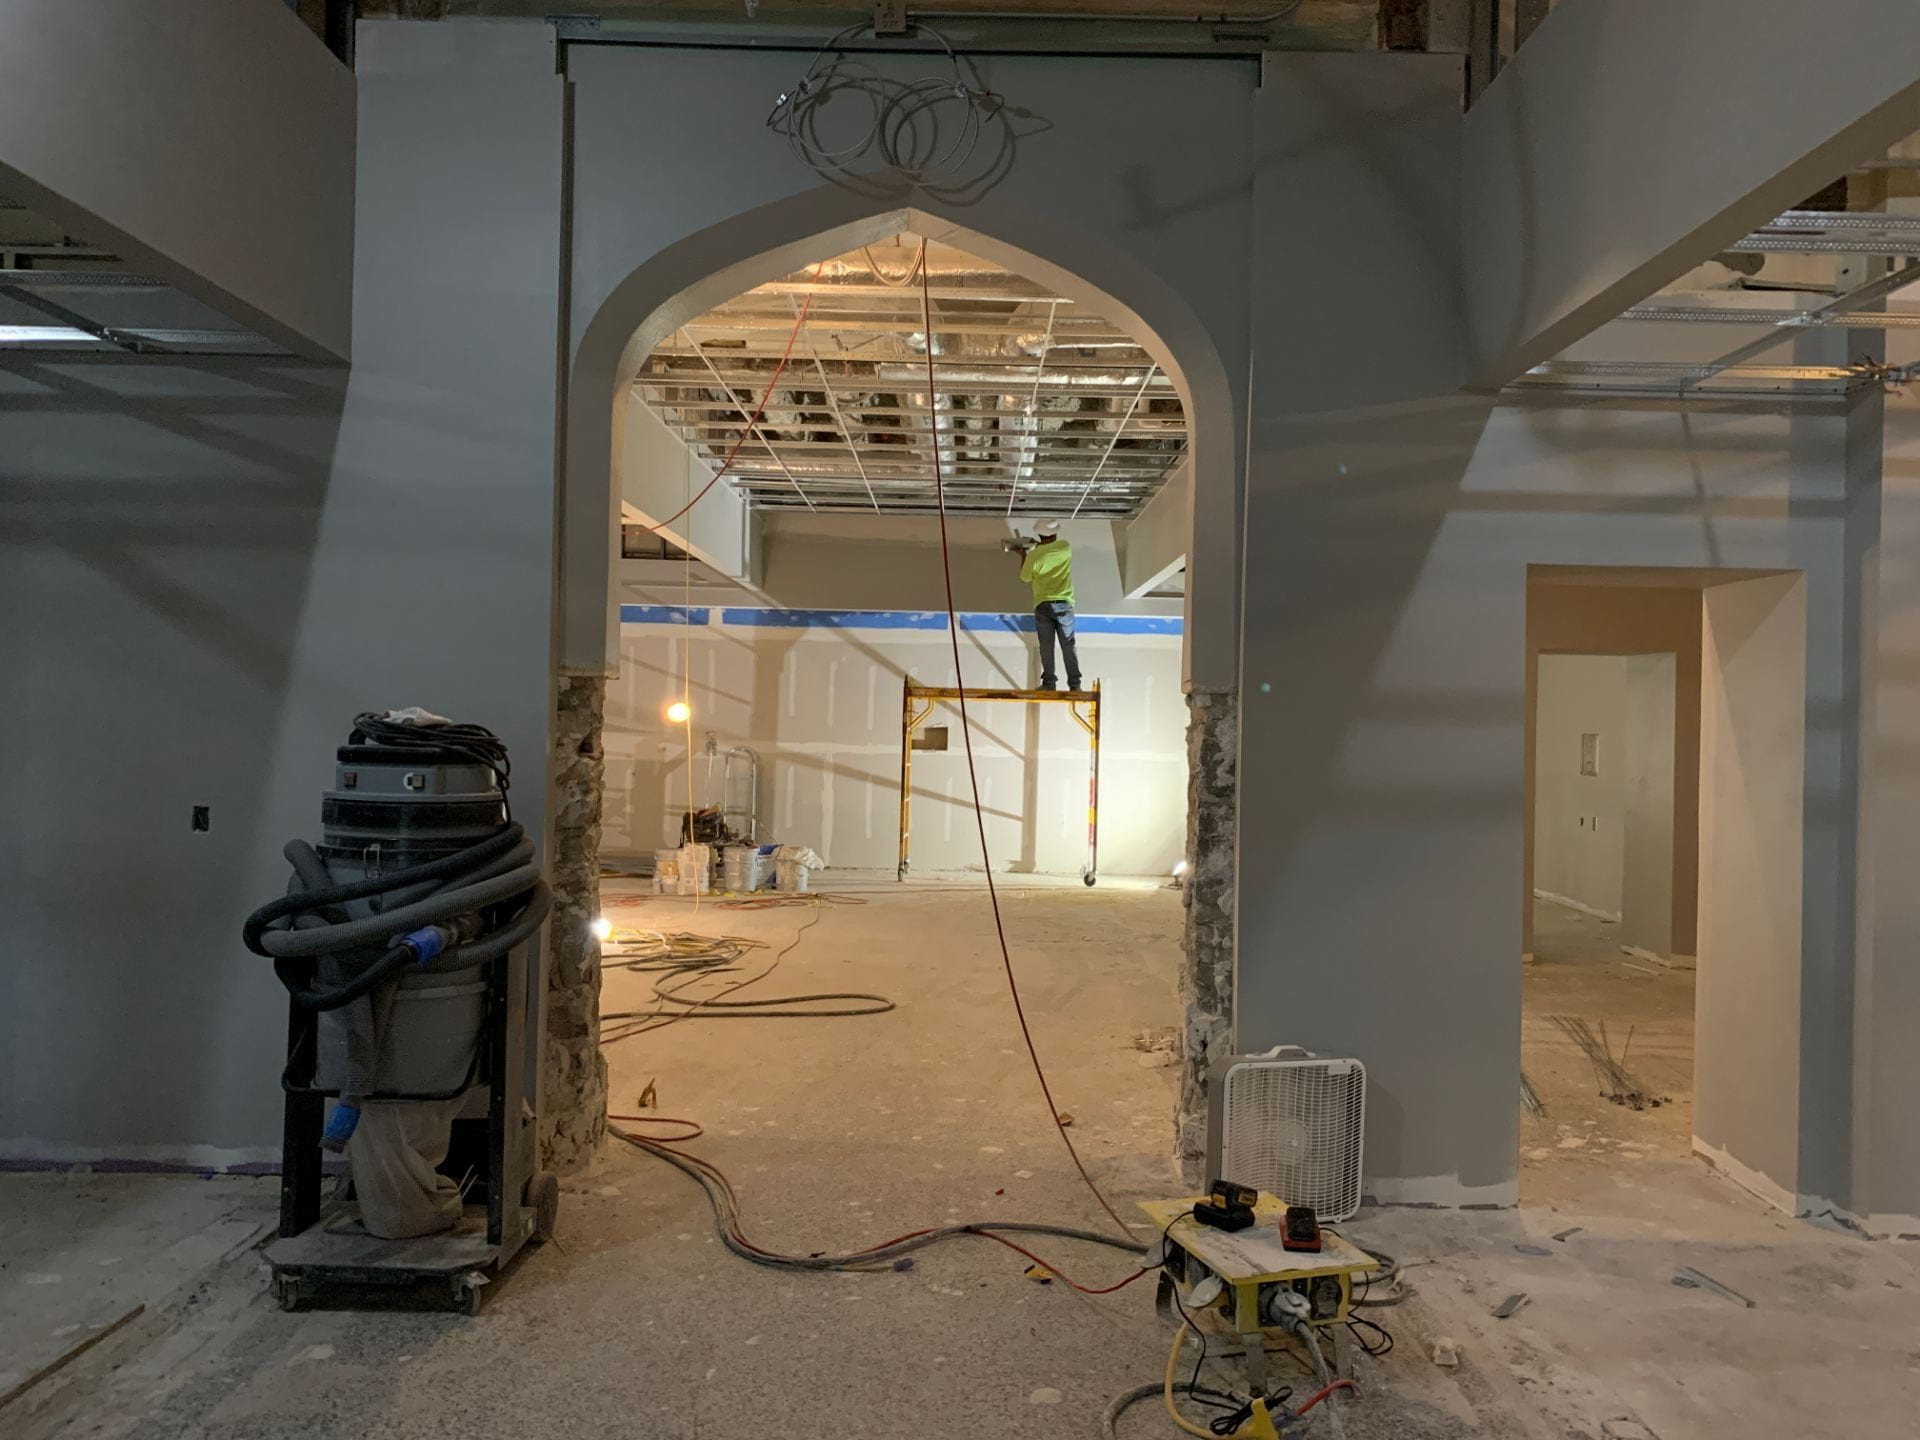 A construction worker is seen on the other side of an arched doorway.